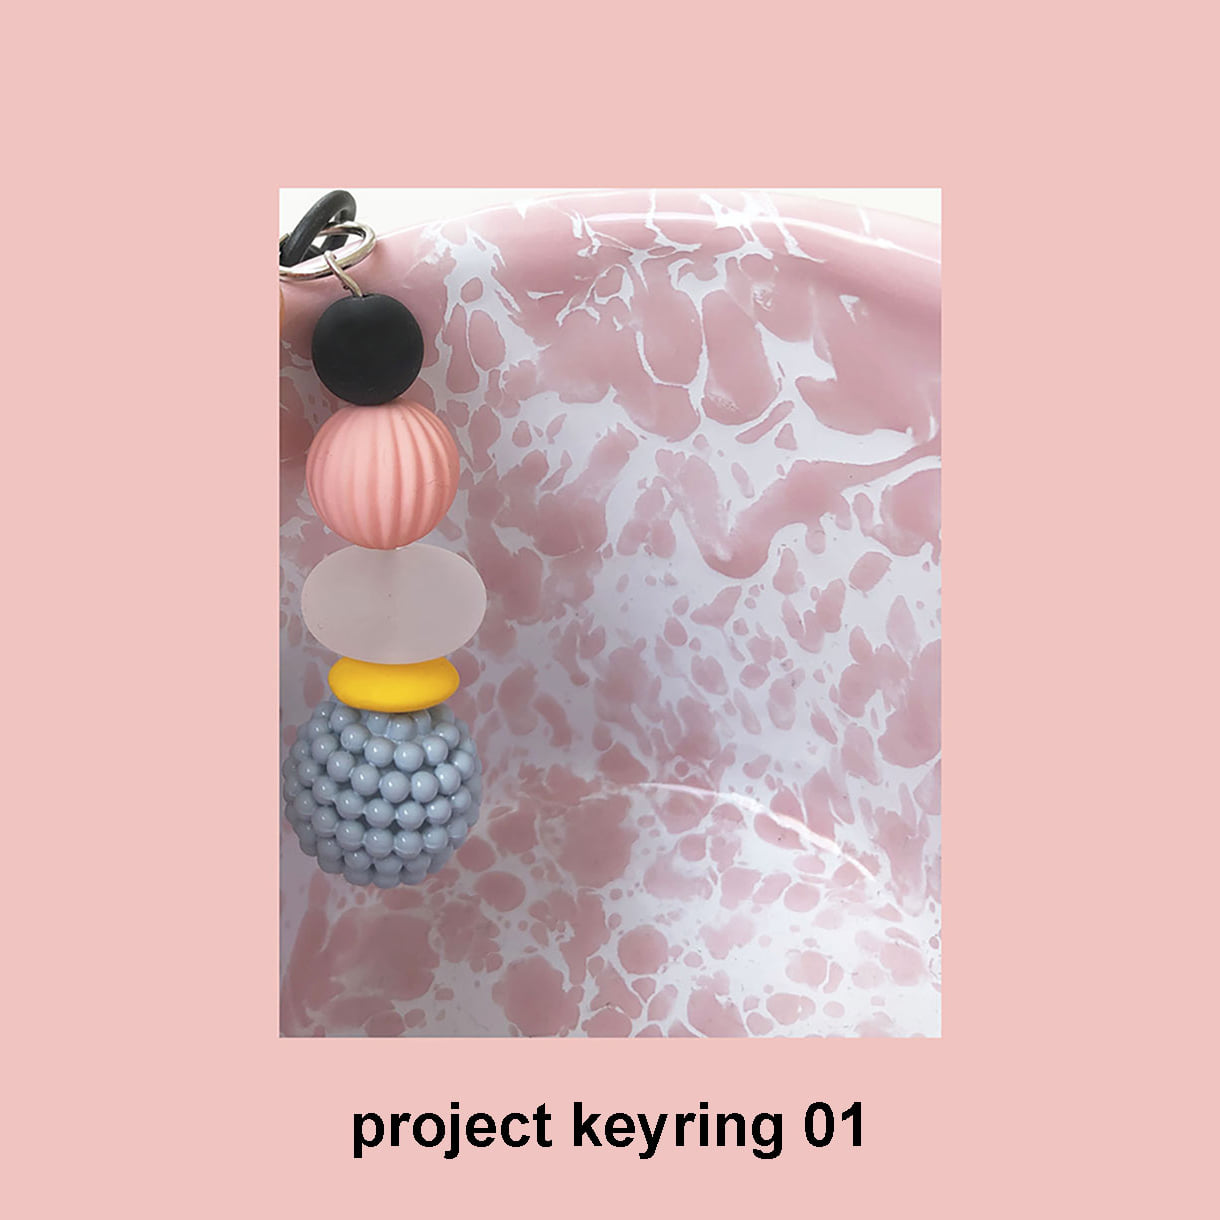 project keyring 01